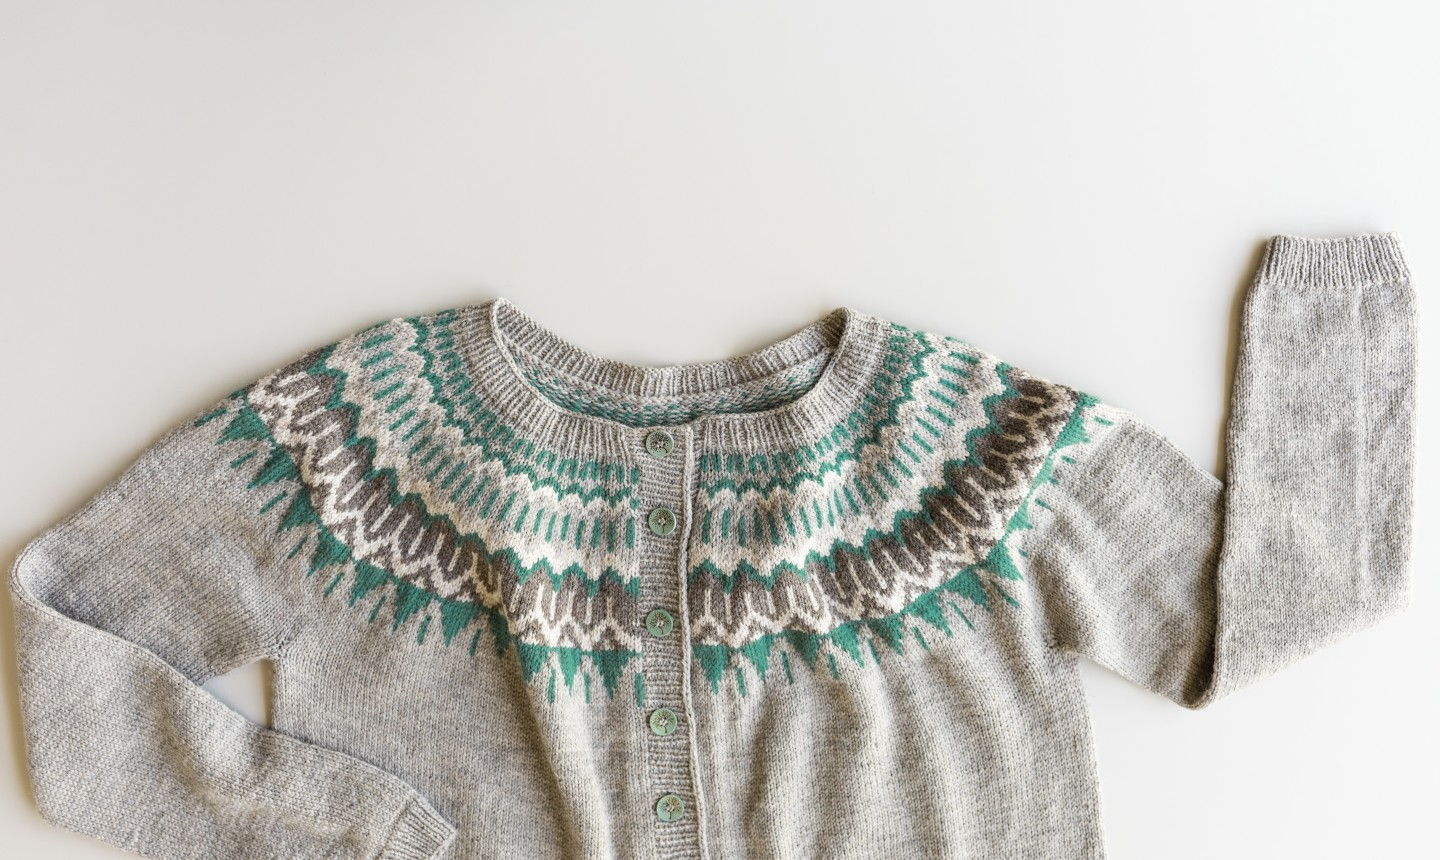 knit sweater with colorwork yoke